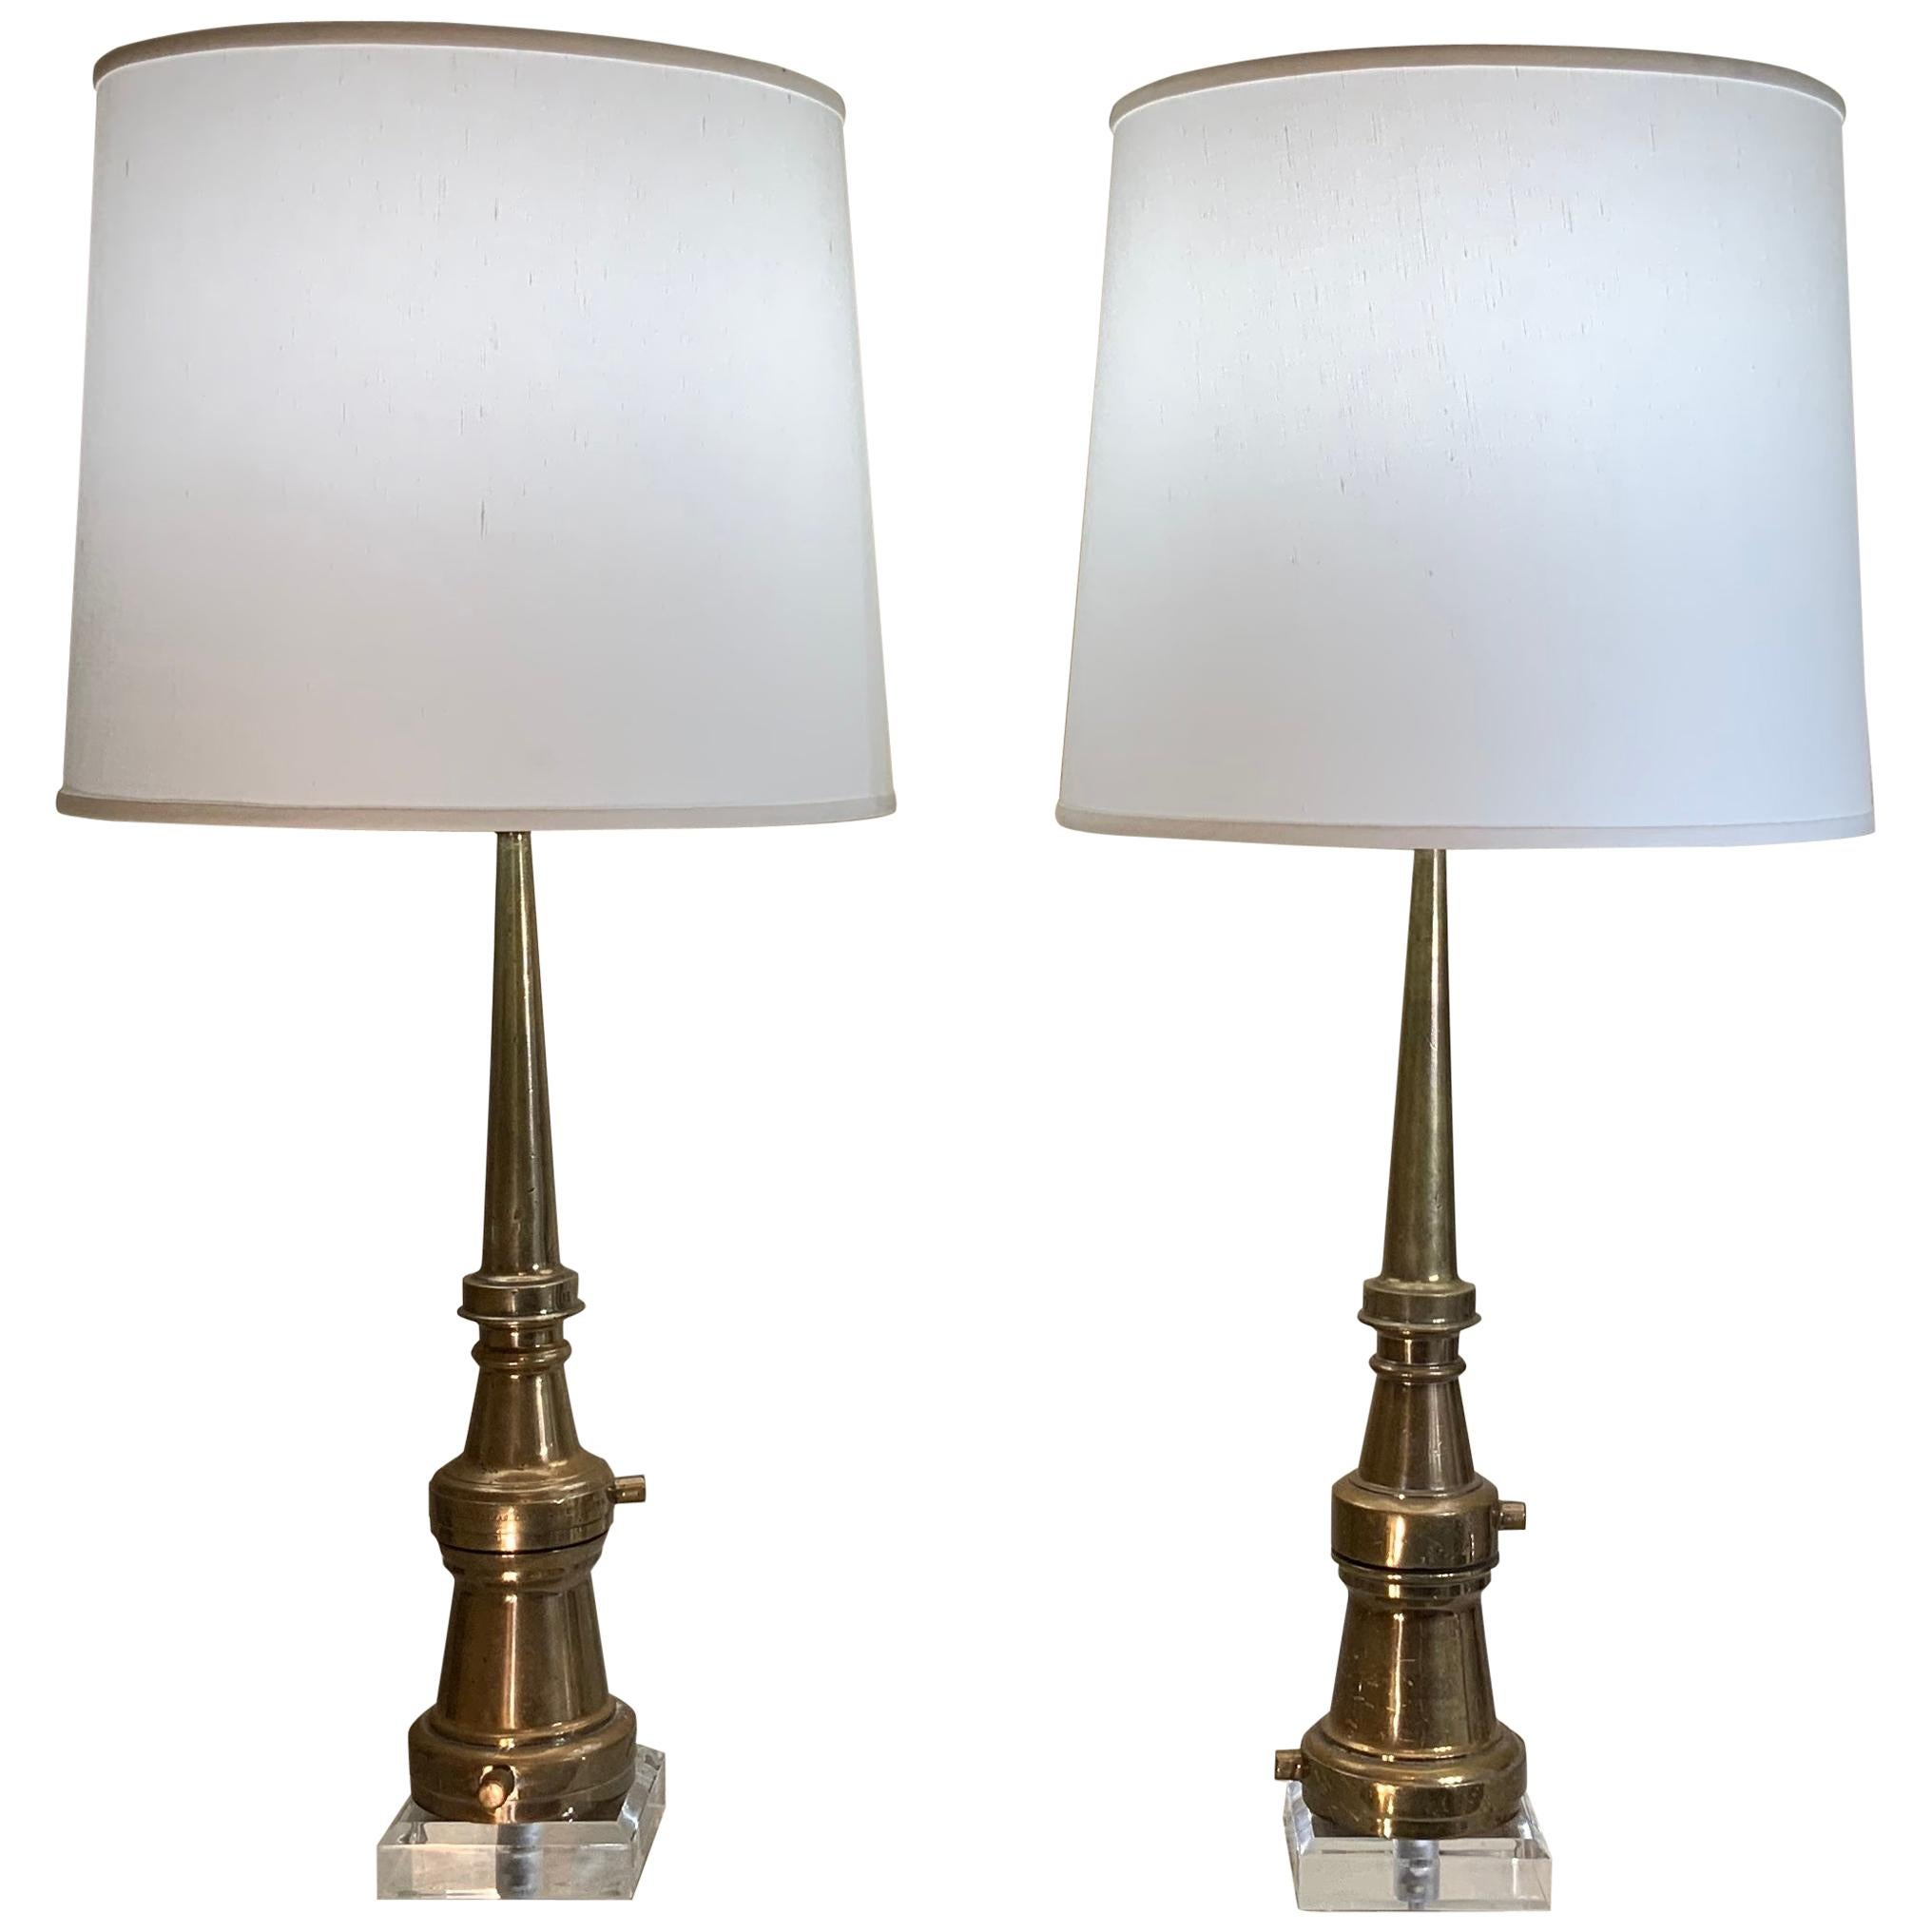 Pair of Midcentury Copper Table Lamps